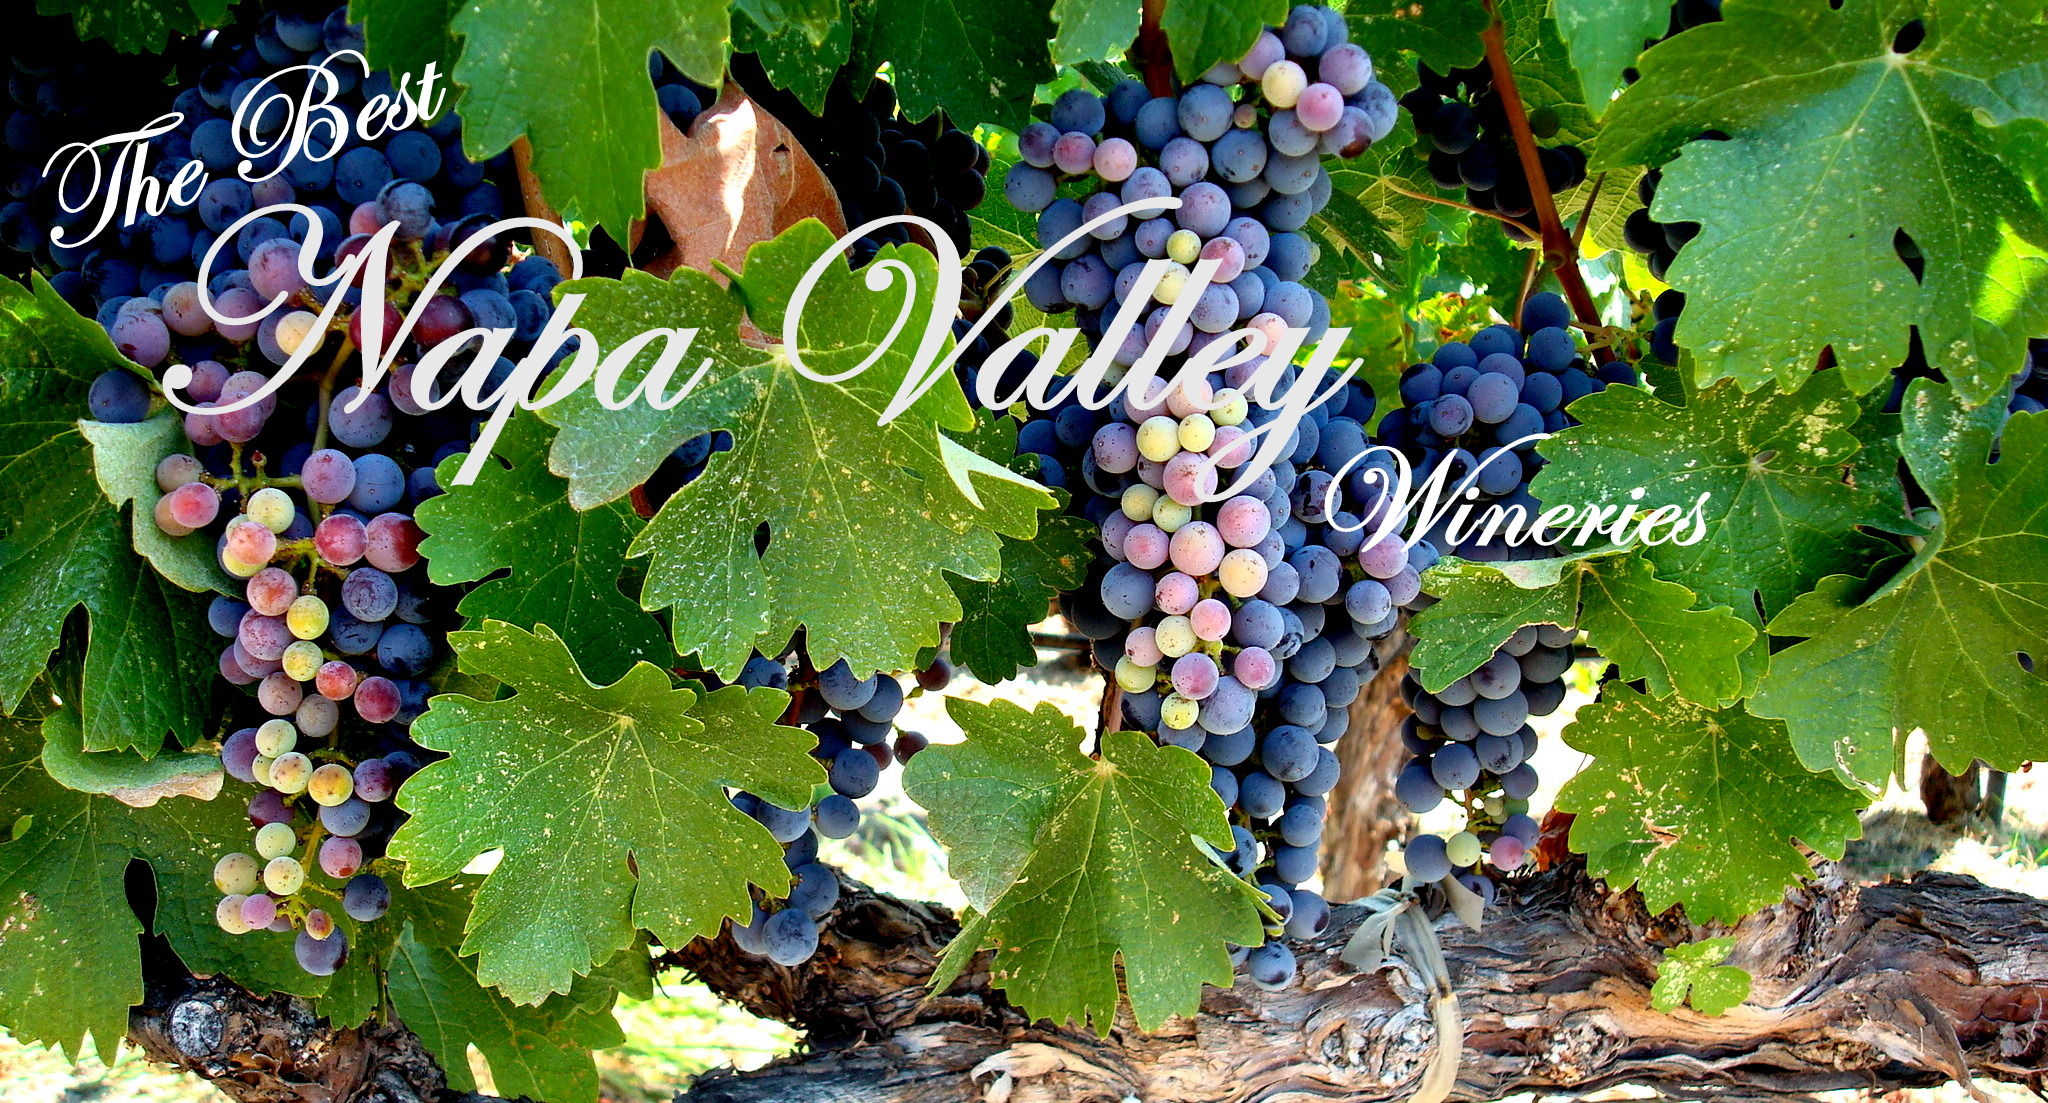 Napa valley wineries three olives branch for Best time to visit napa valley wine country